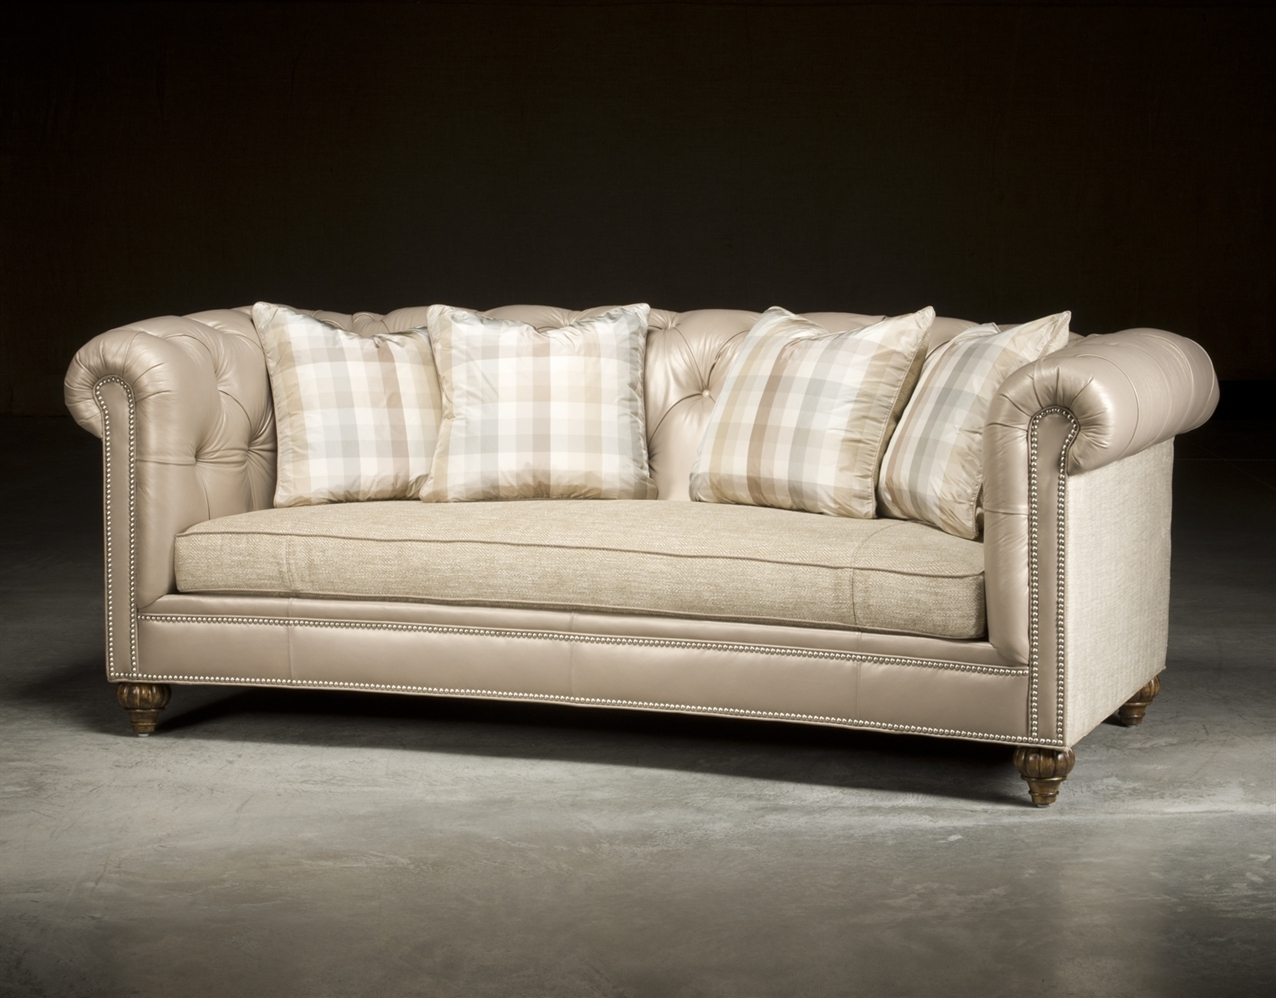 Newest Sofa : Formal Sofa Sofa Clearance High Quality Furniture Brands Inside Mid Range Sofas (View 17 of 20)